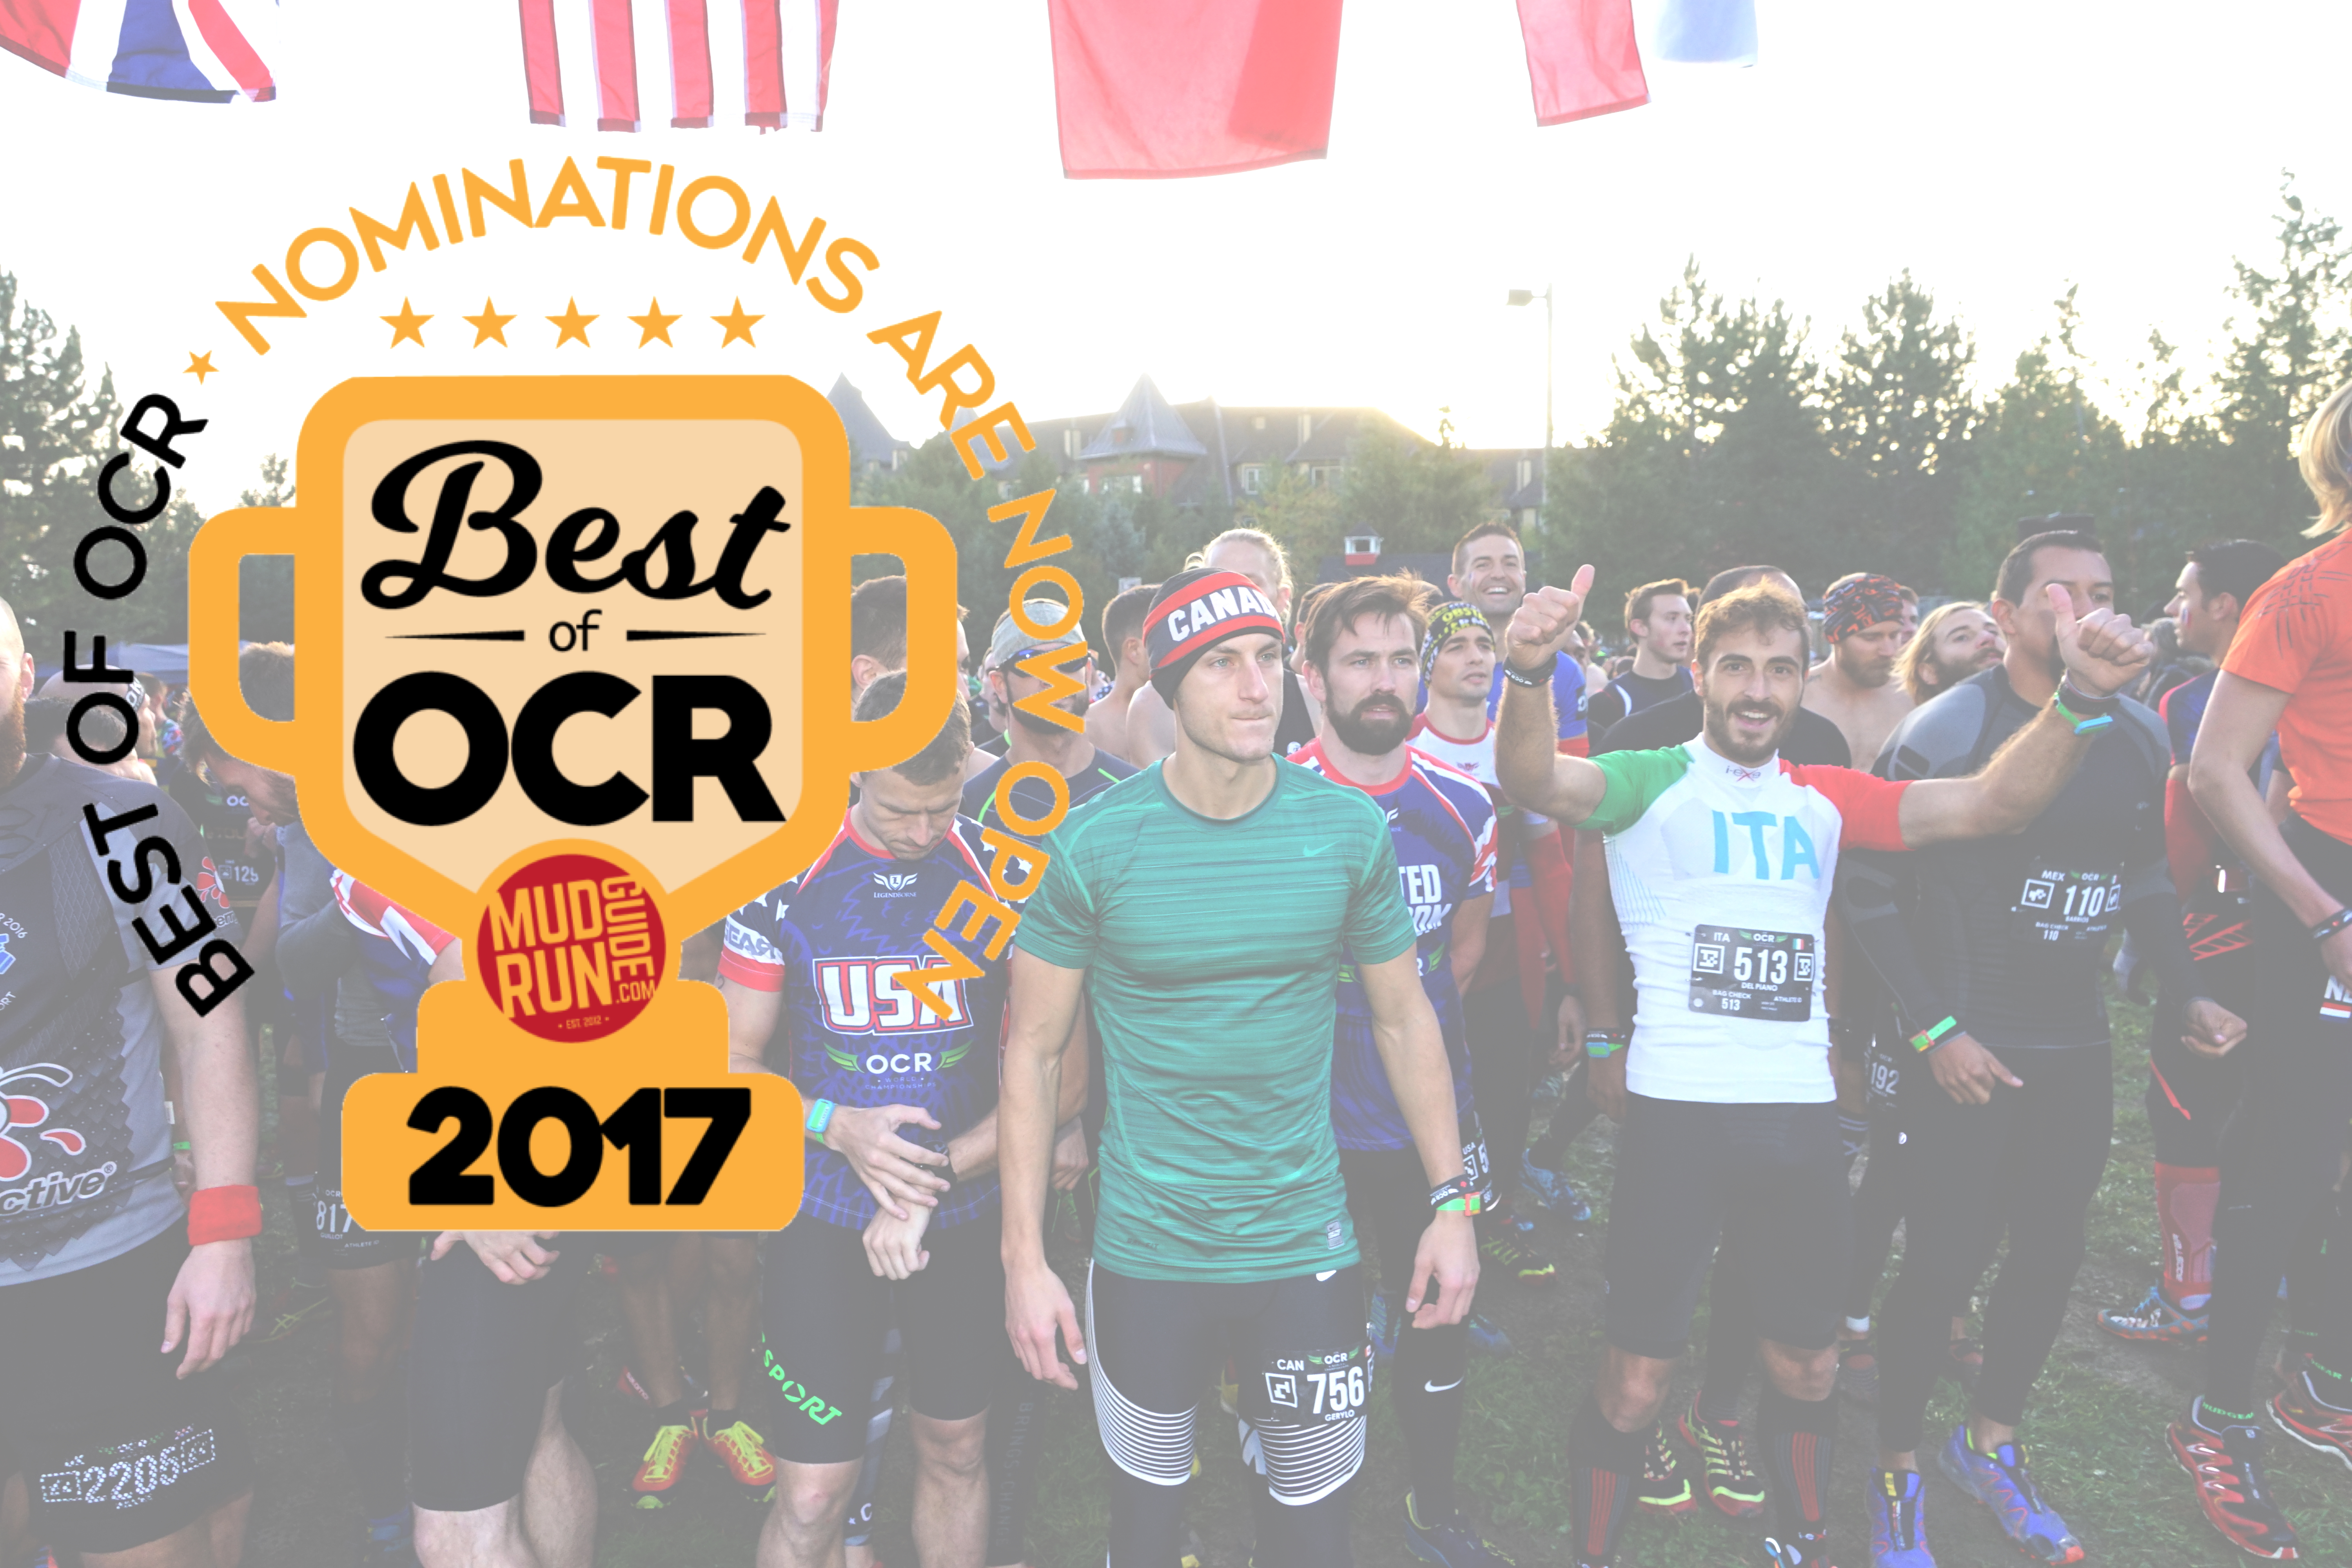 Best of OCR 2017